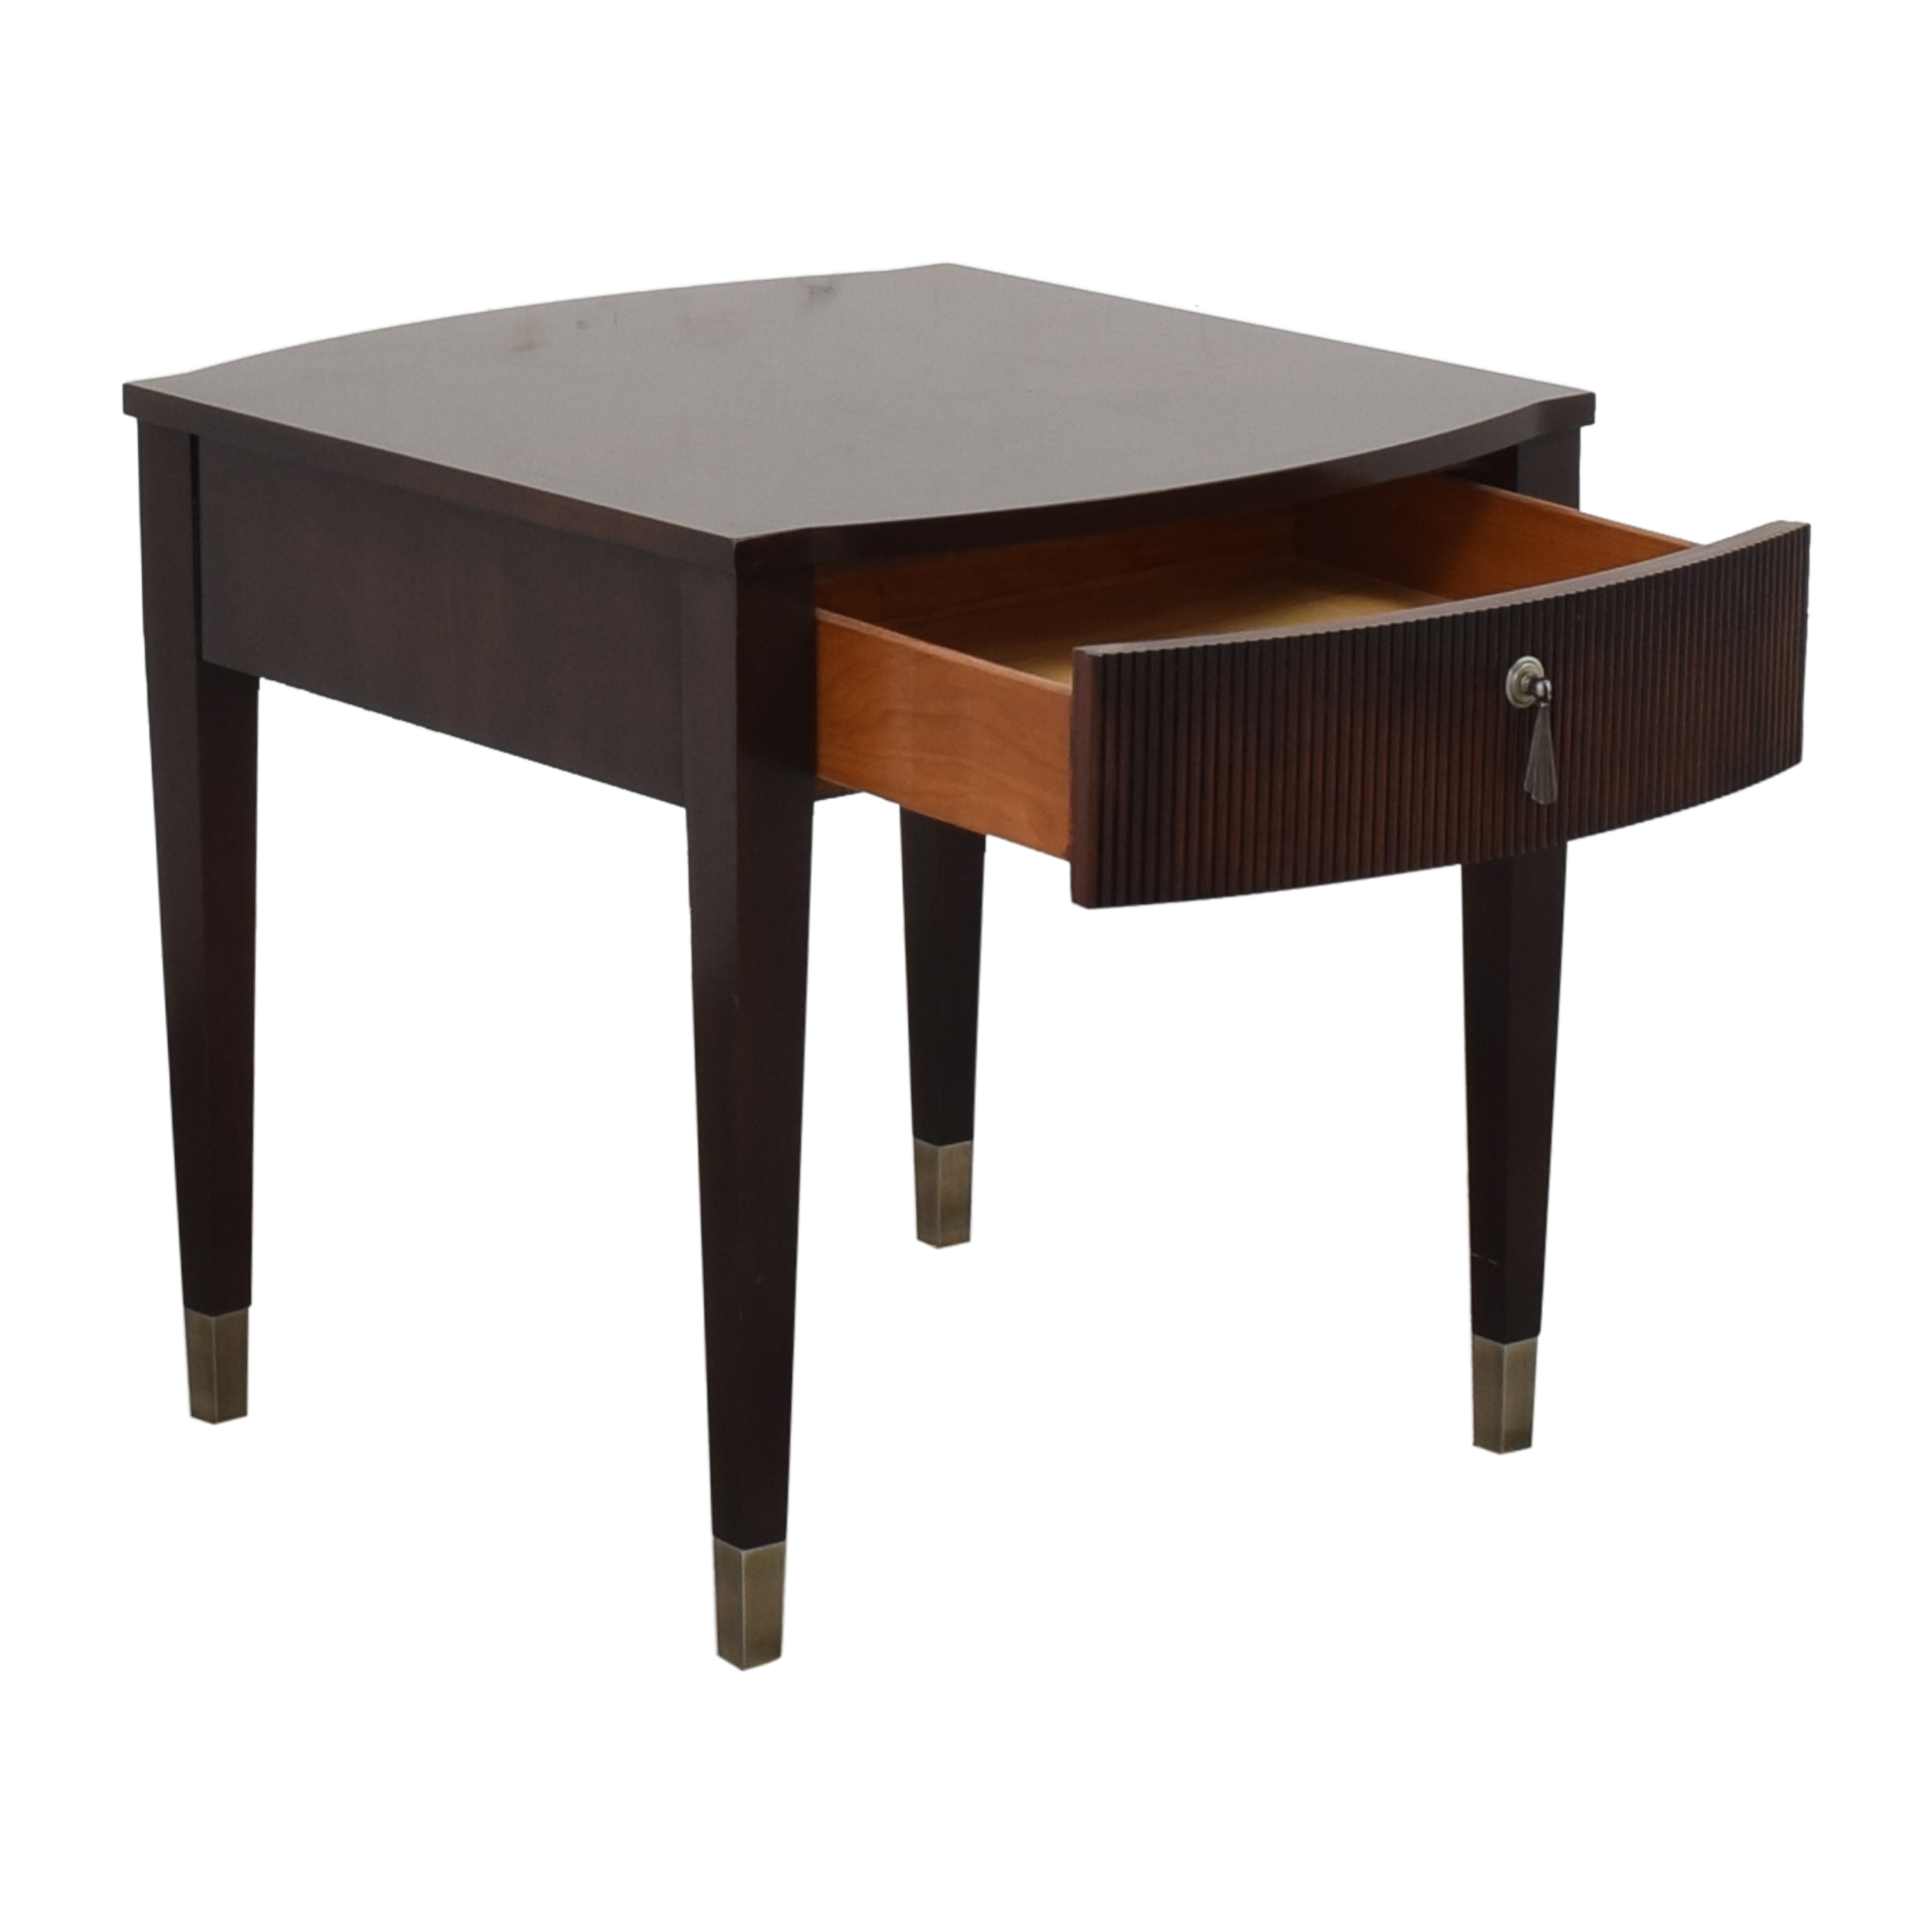 Ethan Allen Ethan Allen Avenue End Table dark brown